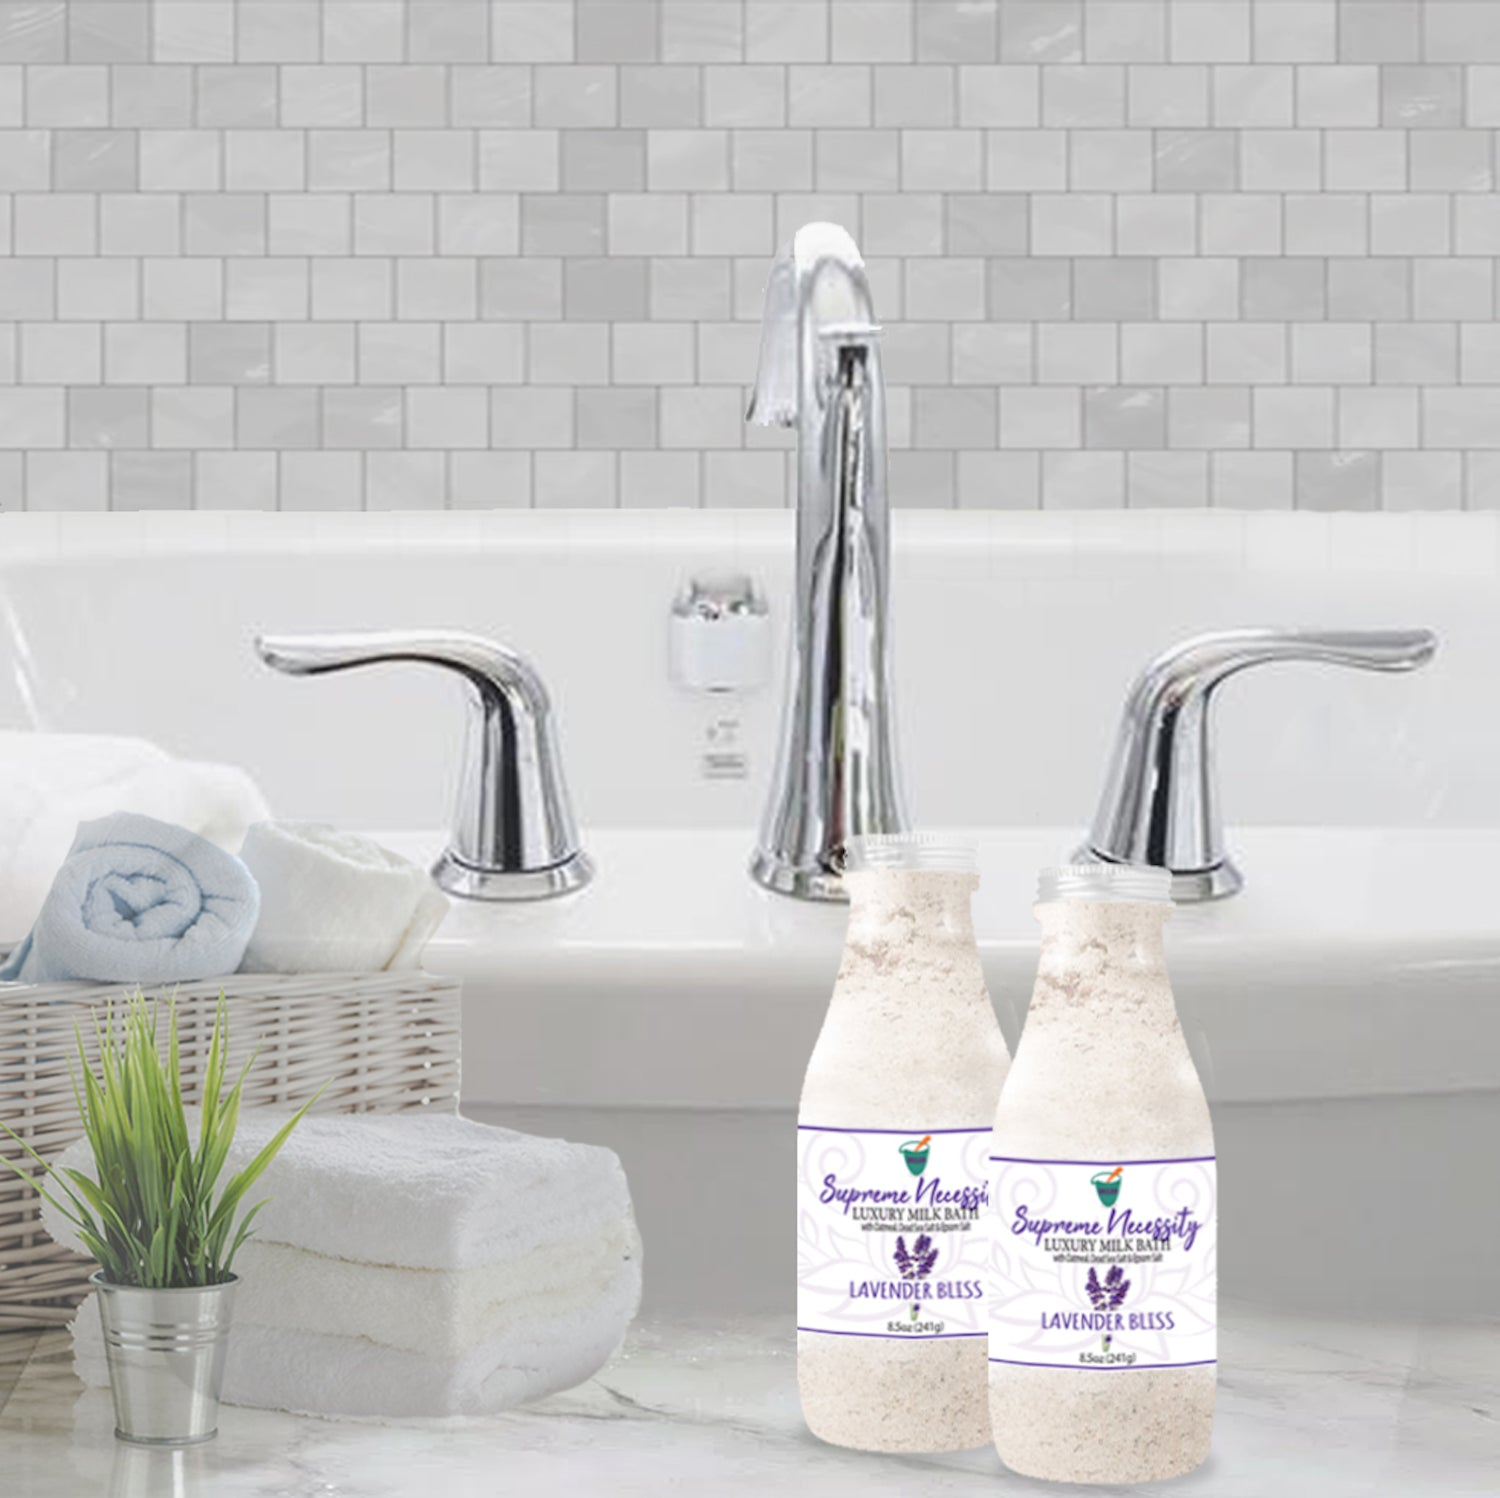 SUPREME NECESSITY LUXURY MILK BATH: LAVENDER BLISS